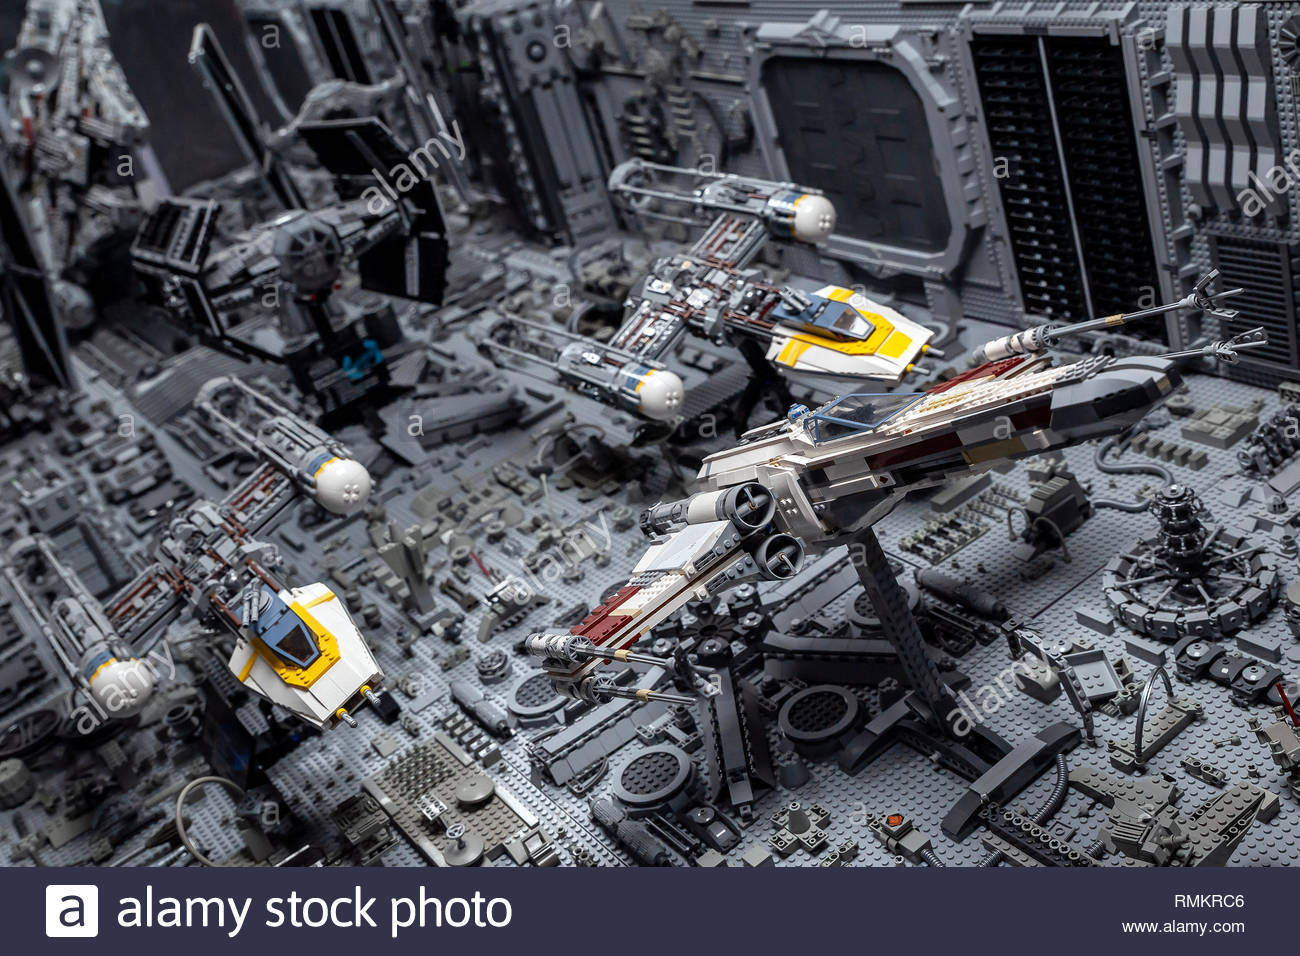 "LEGO STAR WARS exhibition - Pursuit in the trenches of the Death Star (episode 4 ""A New Hope"") Stock Photo"